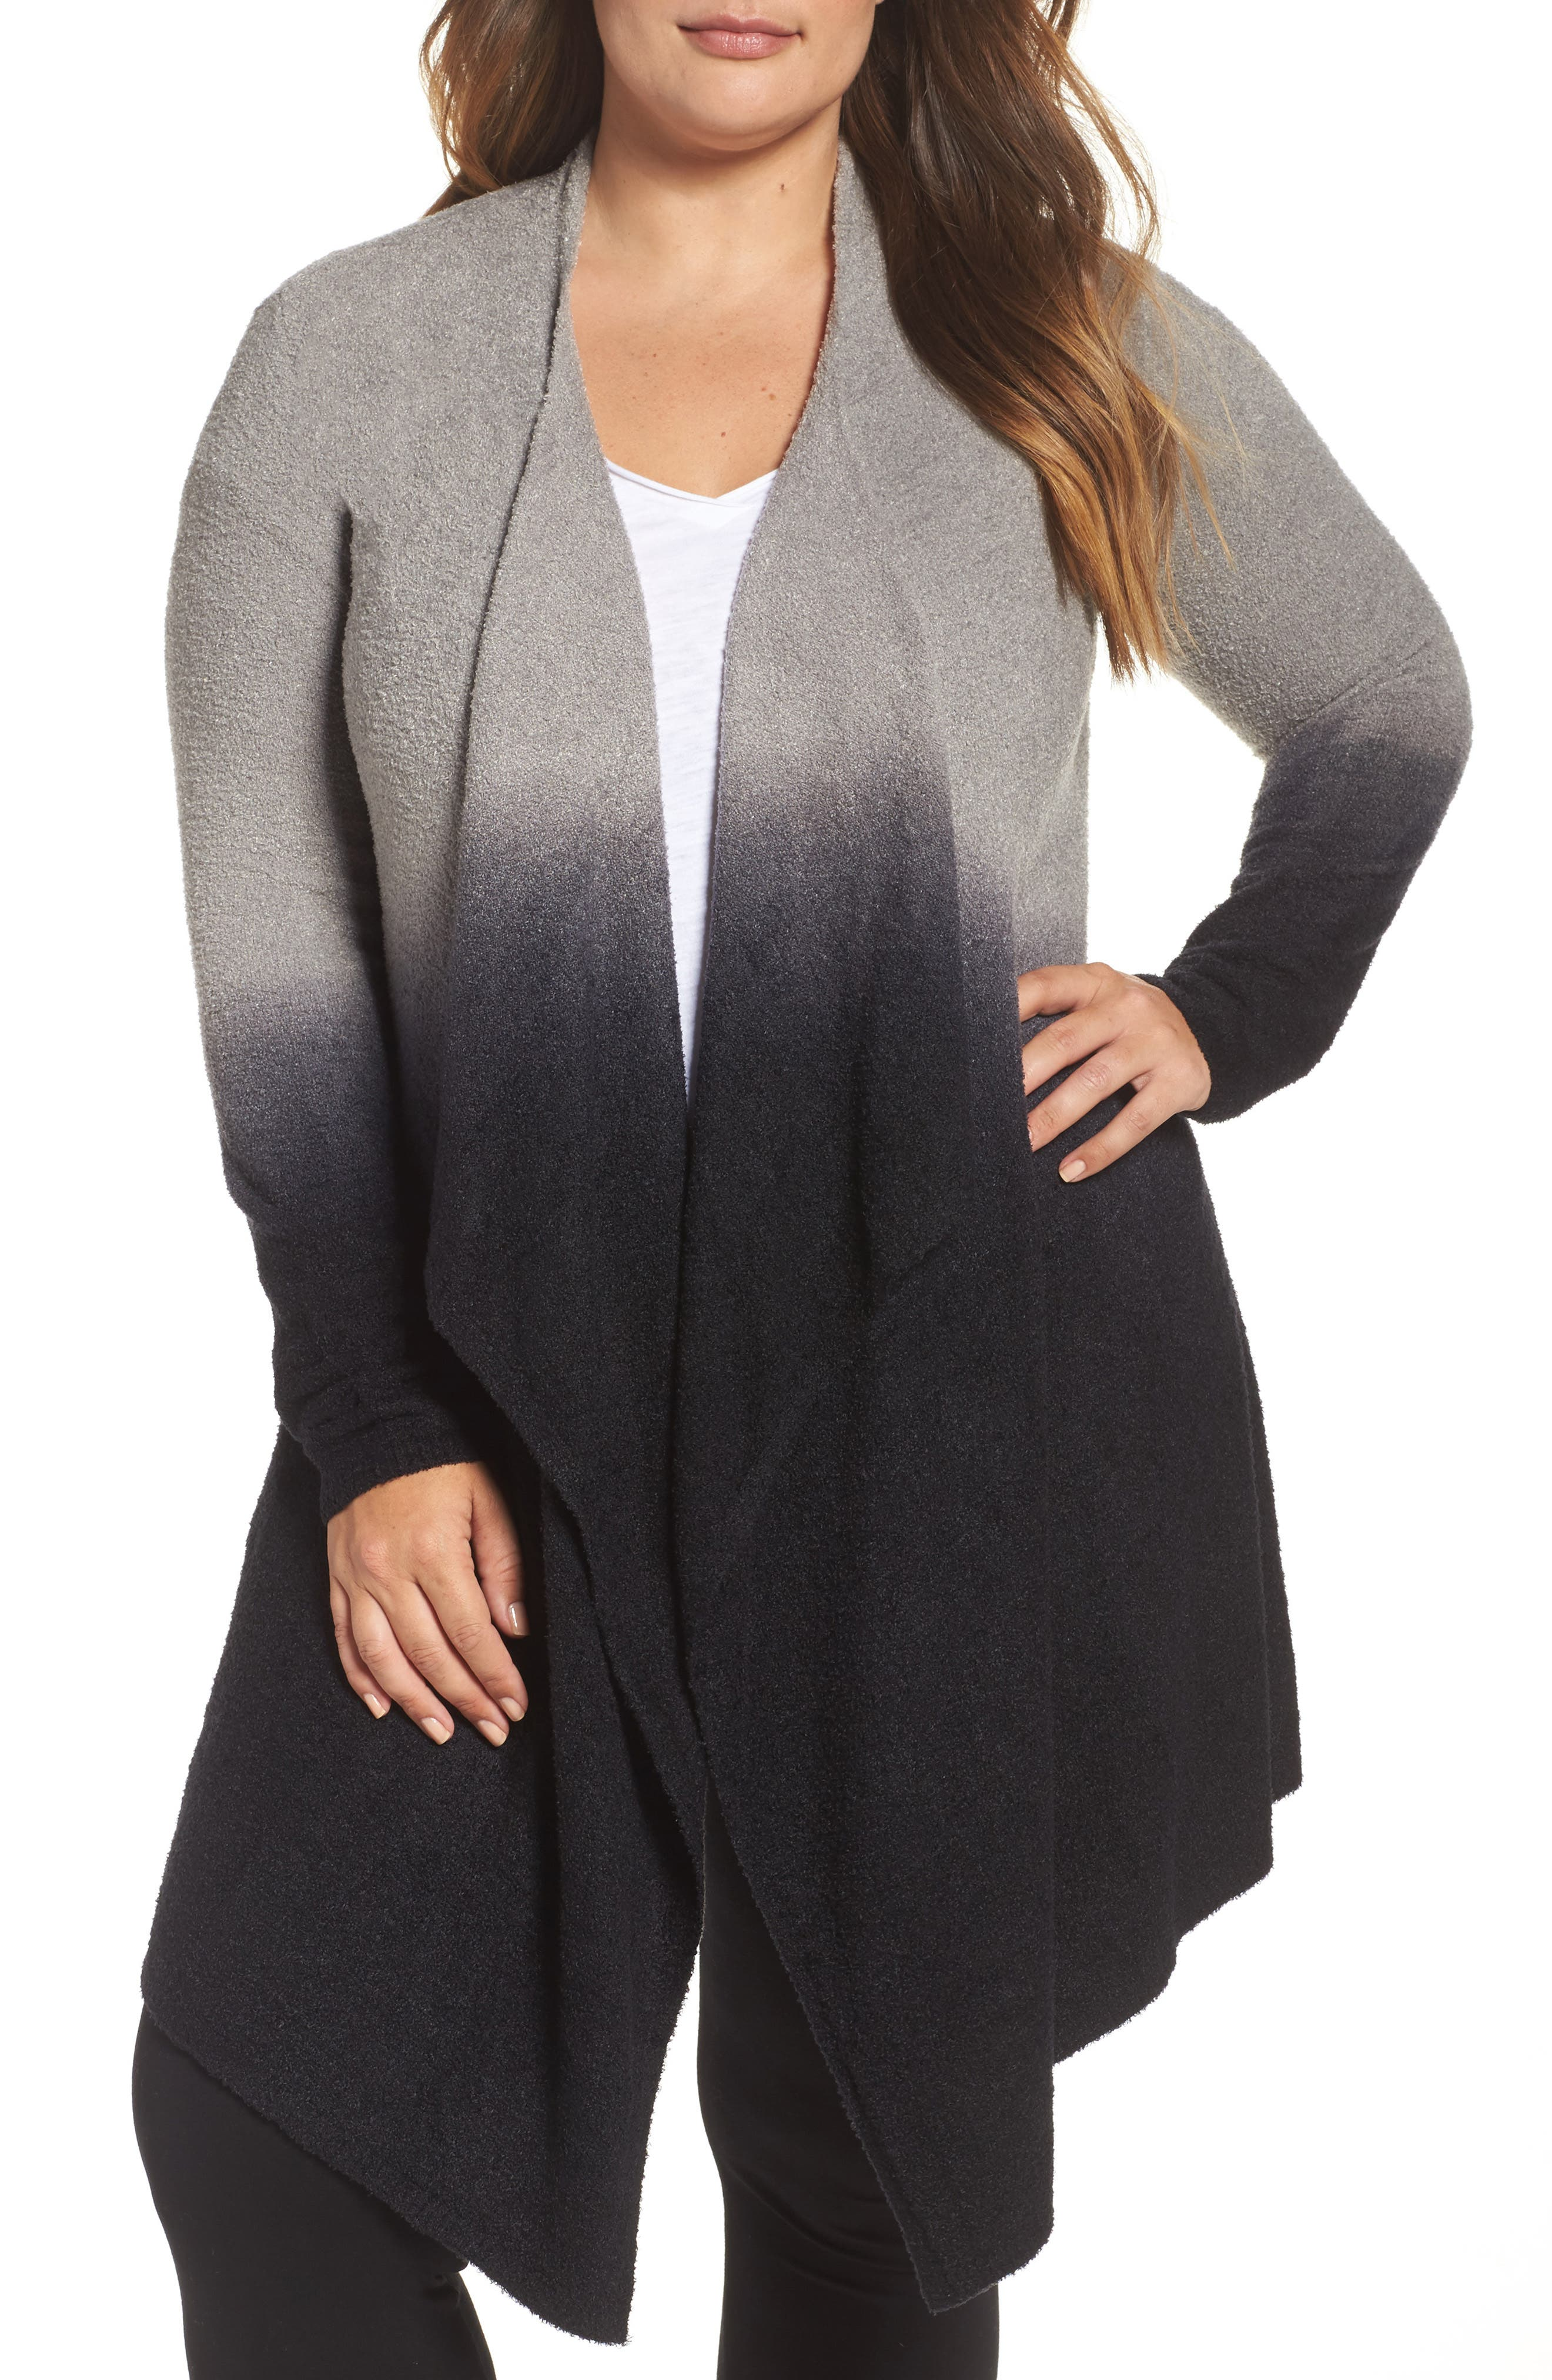 CozyChic Lite<sup>®</sup> Calypso Wrap Cardigan,                             Main thumbnail 1, color,                             PEWTER MIDNIGHT OMBRE